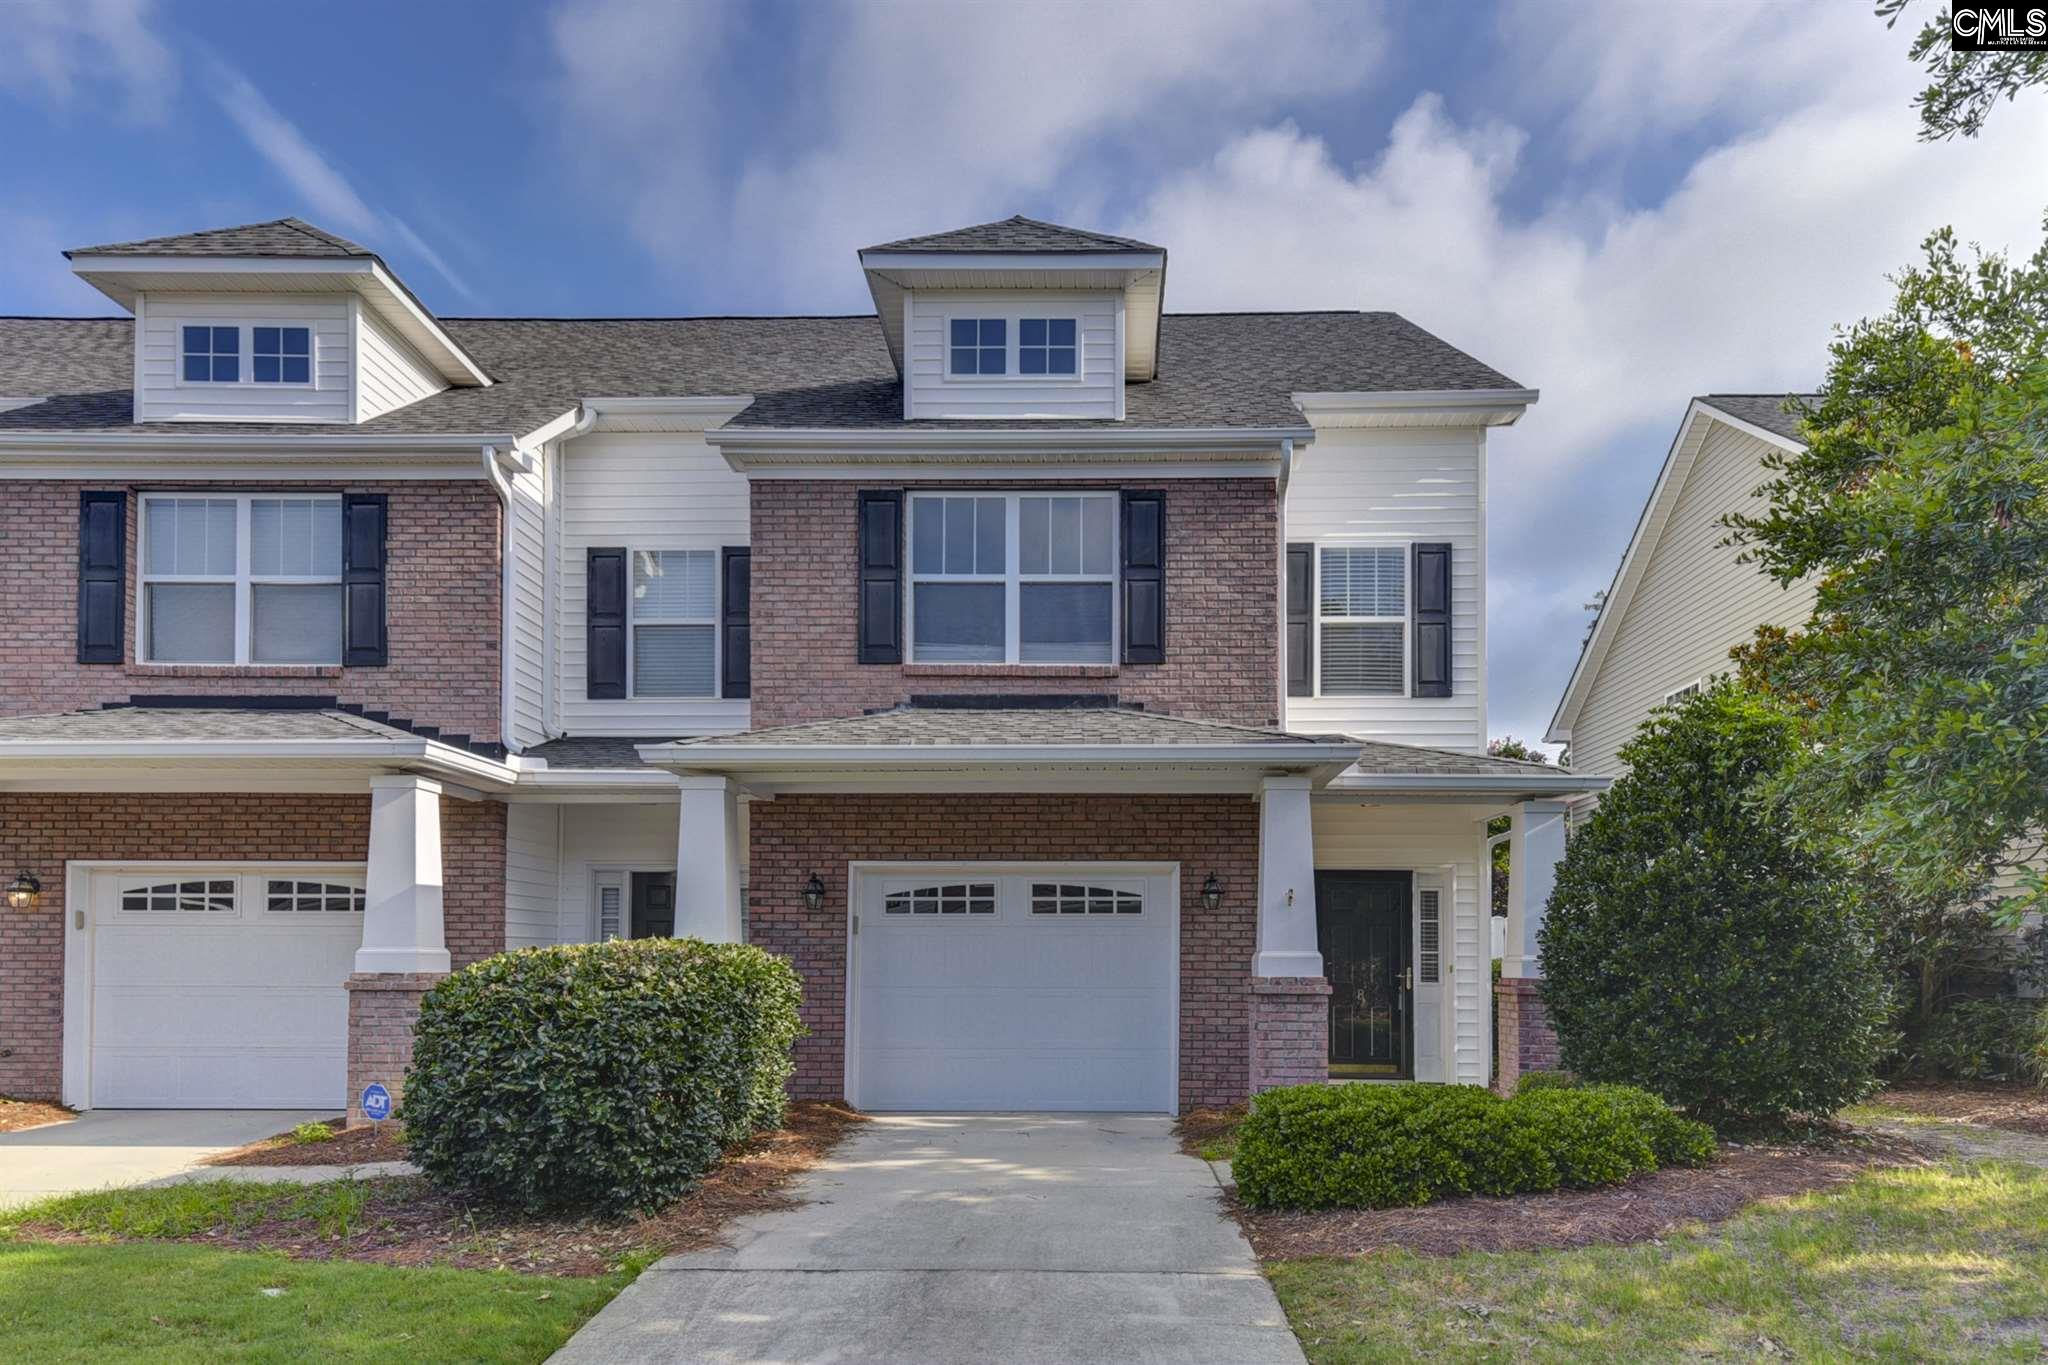 8 Braiden Manor Columbia, SC 29209